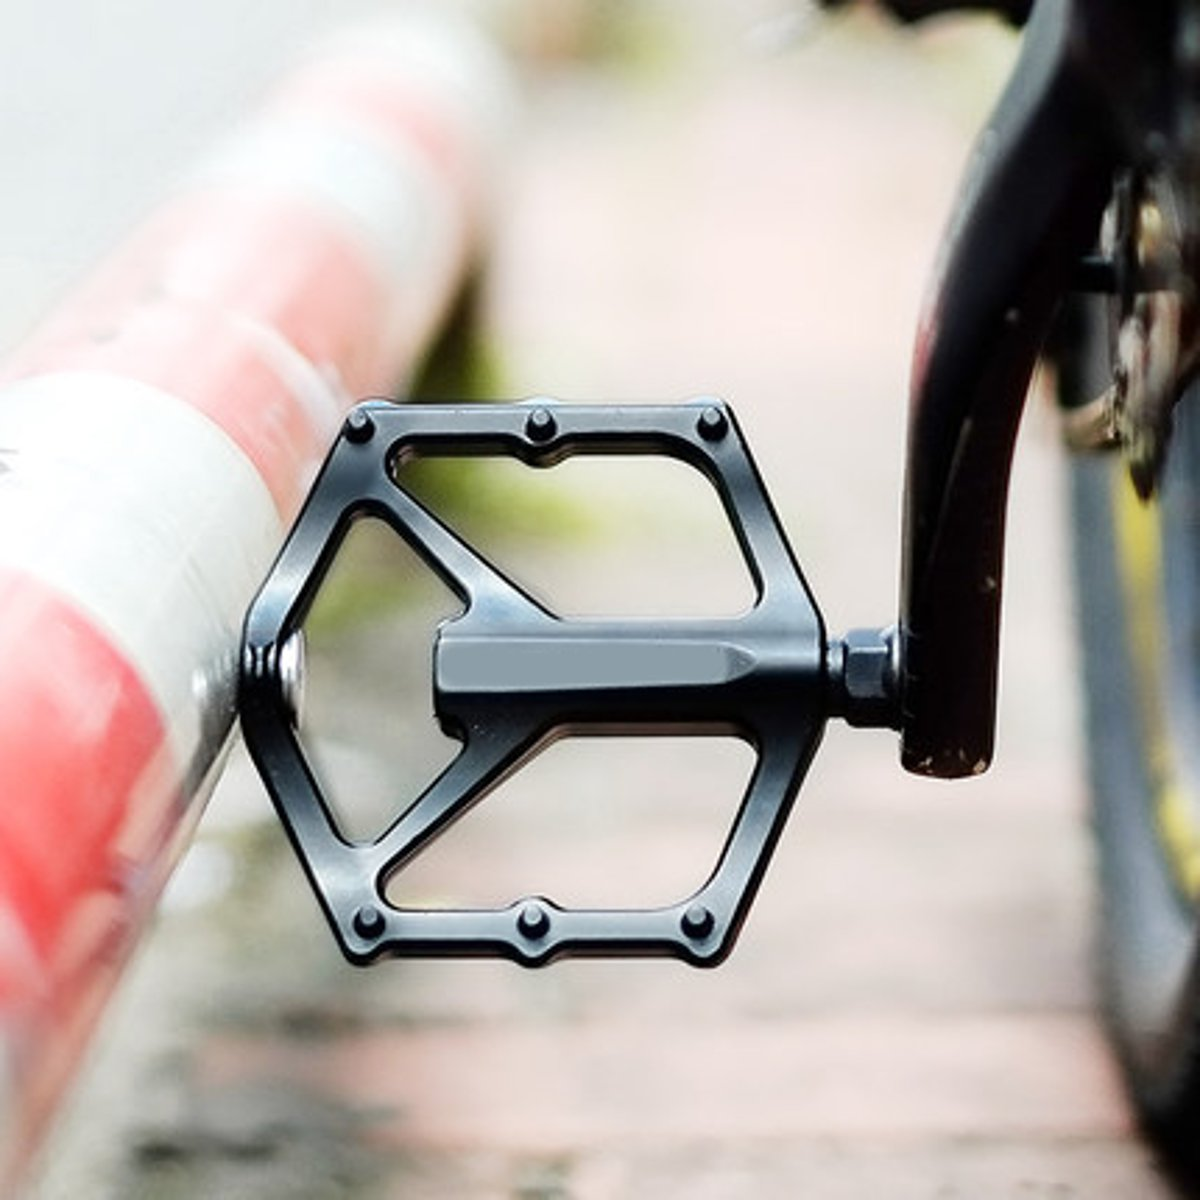 BIKIGHT Aluminum Alloy Bike Pedals Black Cycling Pedals BMX MTB Flat Platform Bicycle Accessories